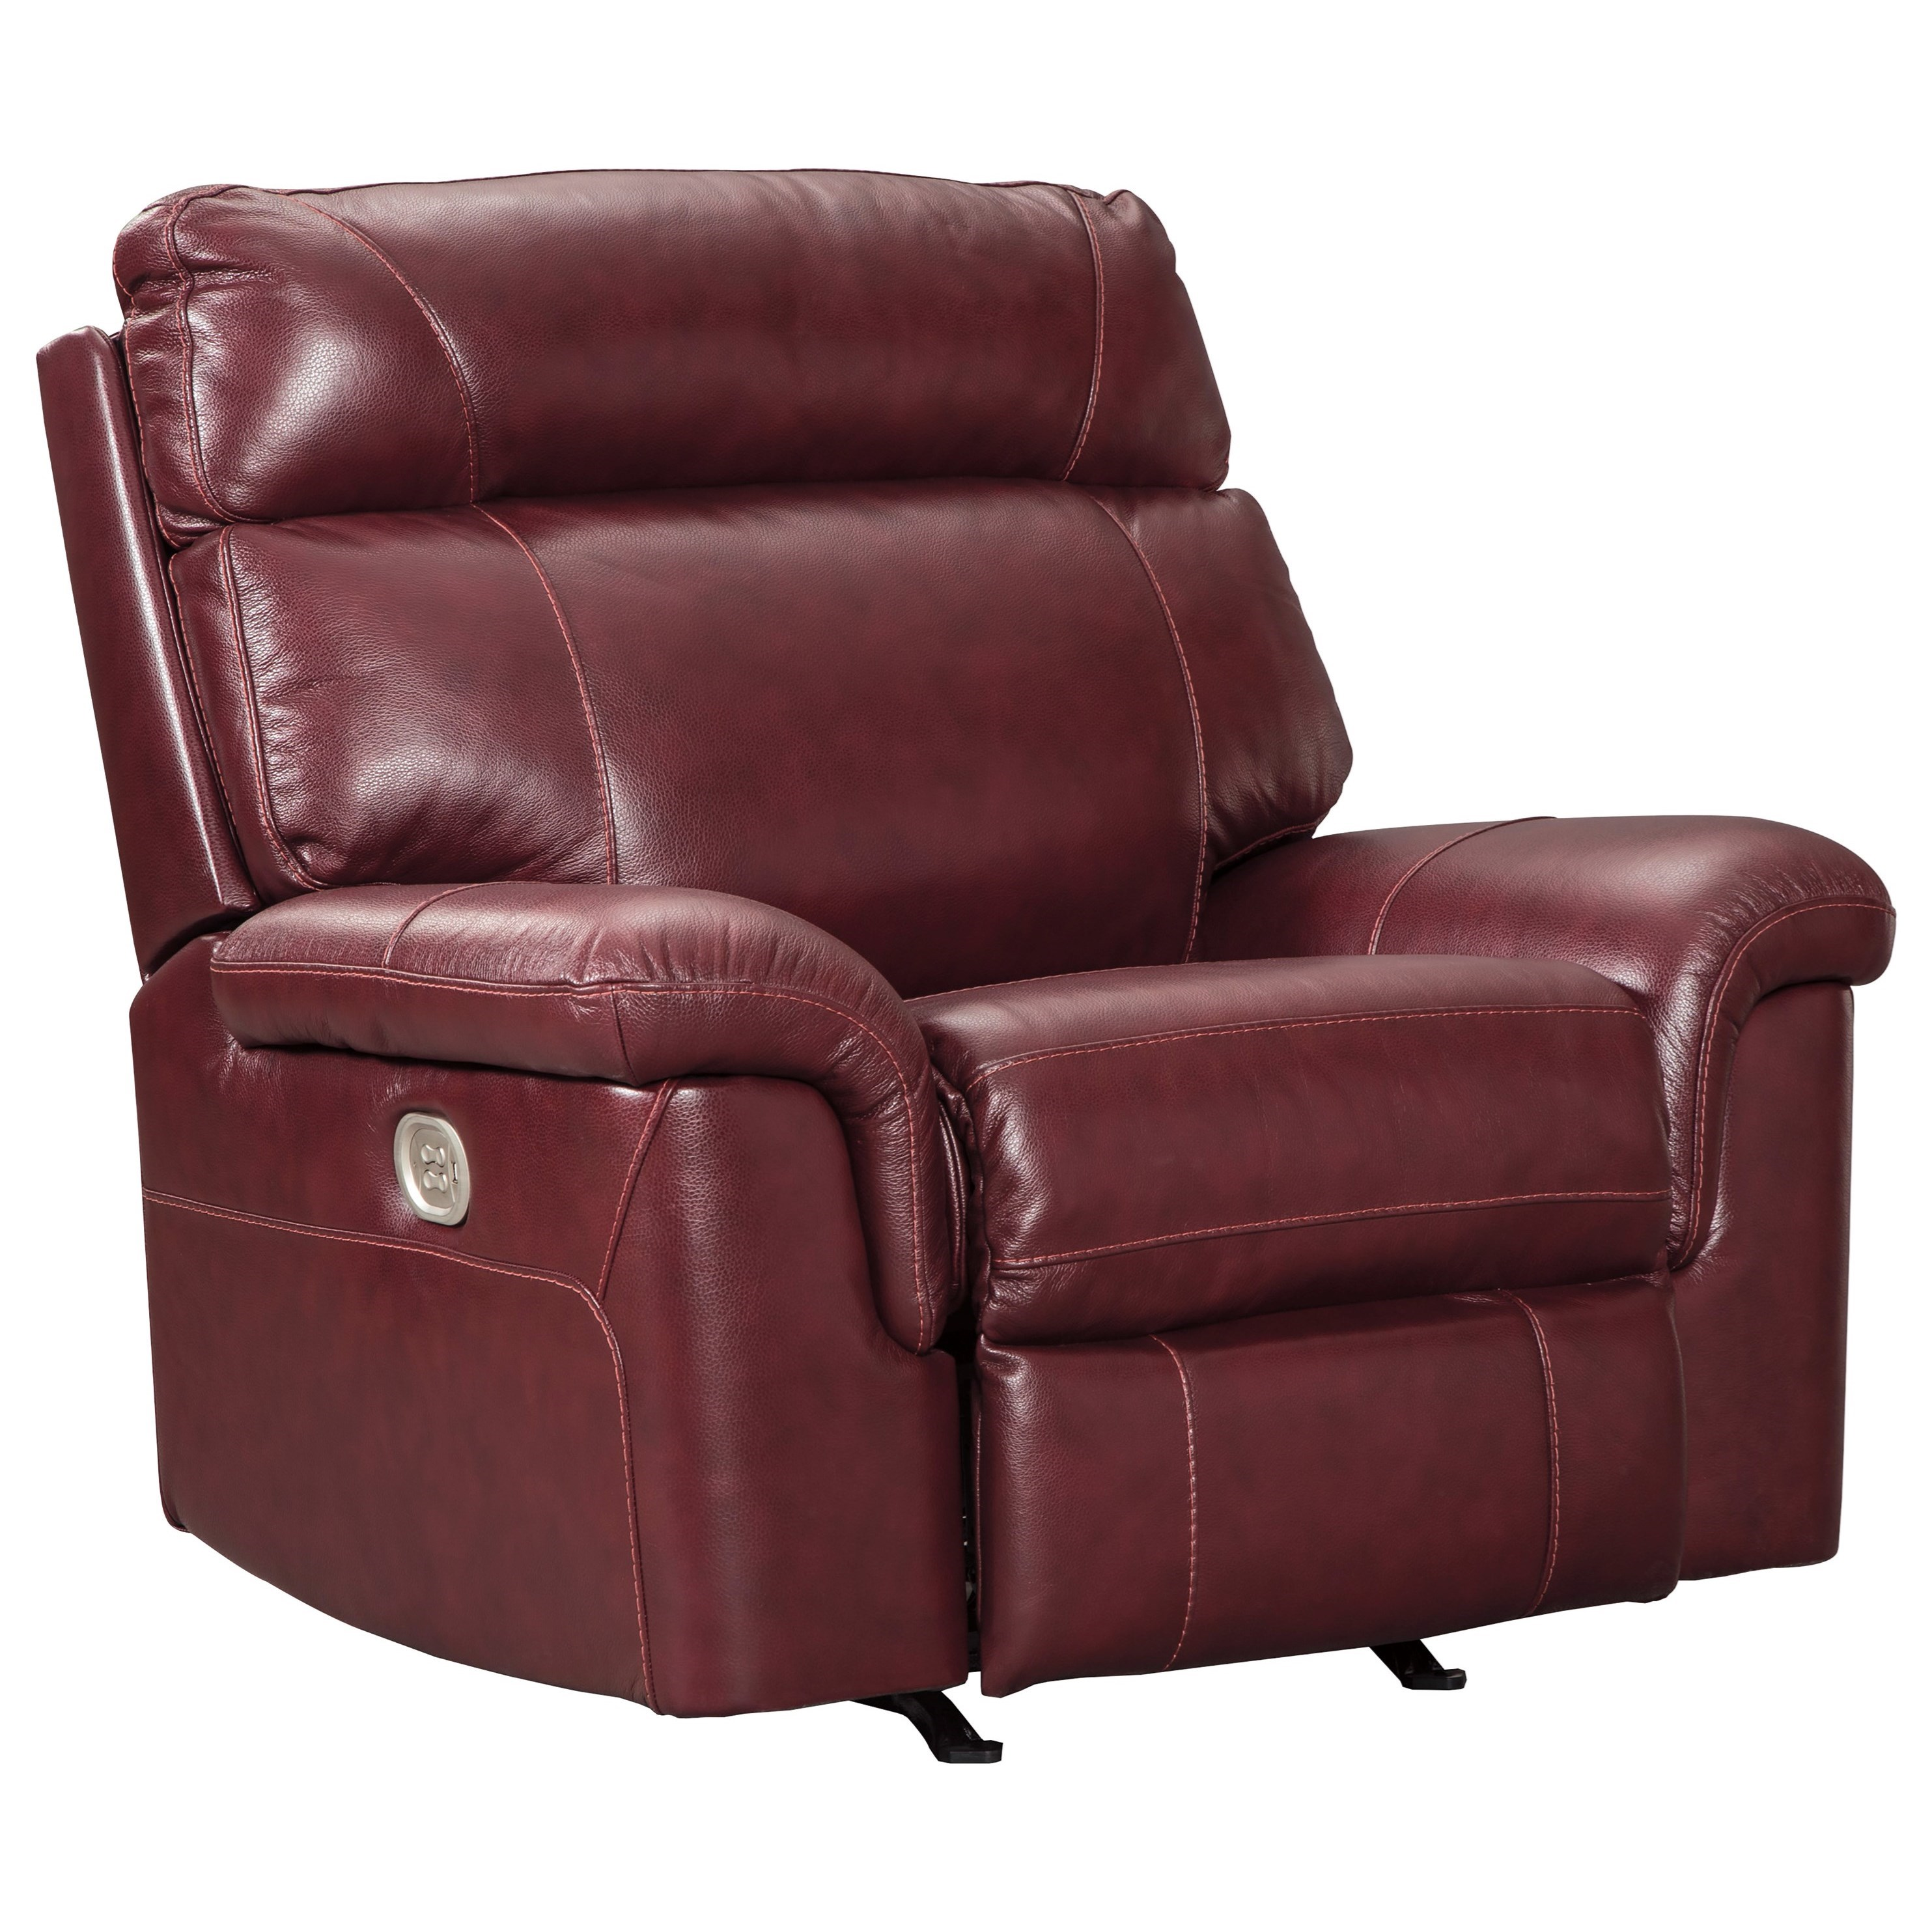 Signature Design by Ashley Duvic Power Recliner w/ Adjustable Headrest - Item Number: 5620213